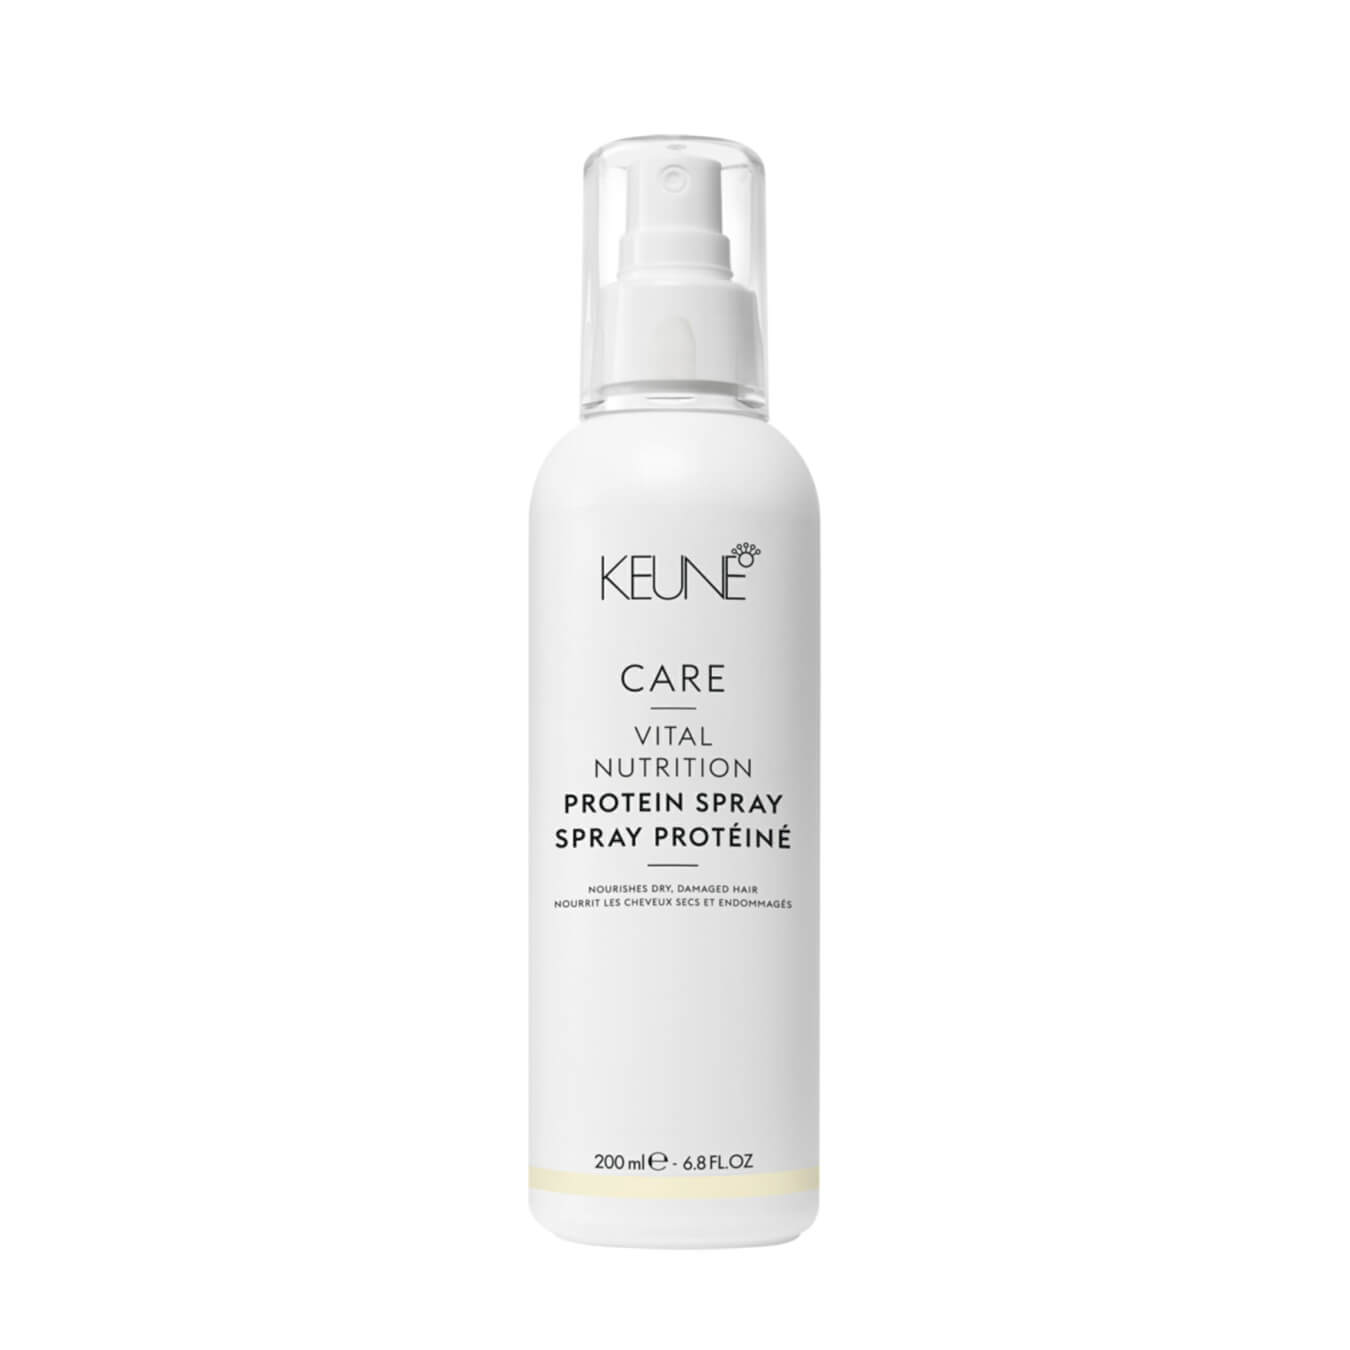 Koop Keune Care Vital Nutrition Protein Spray 200ml